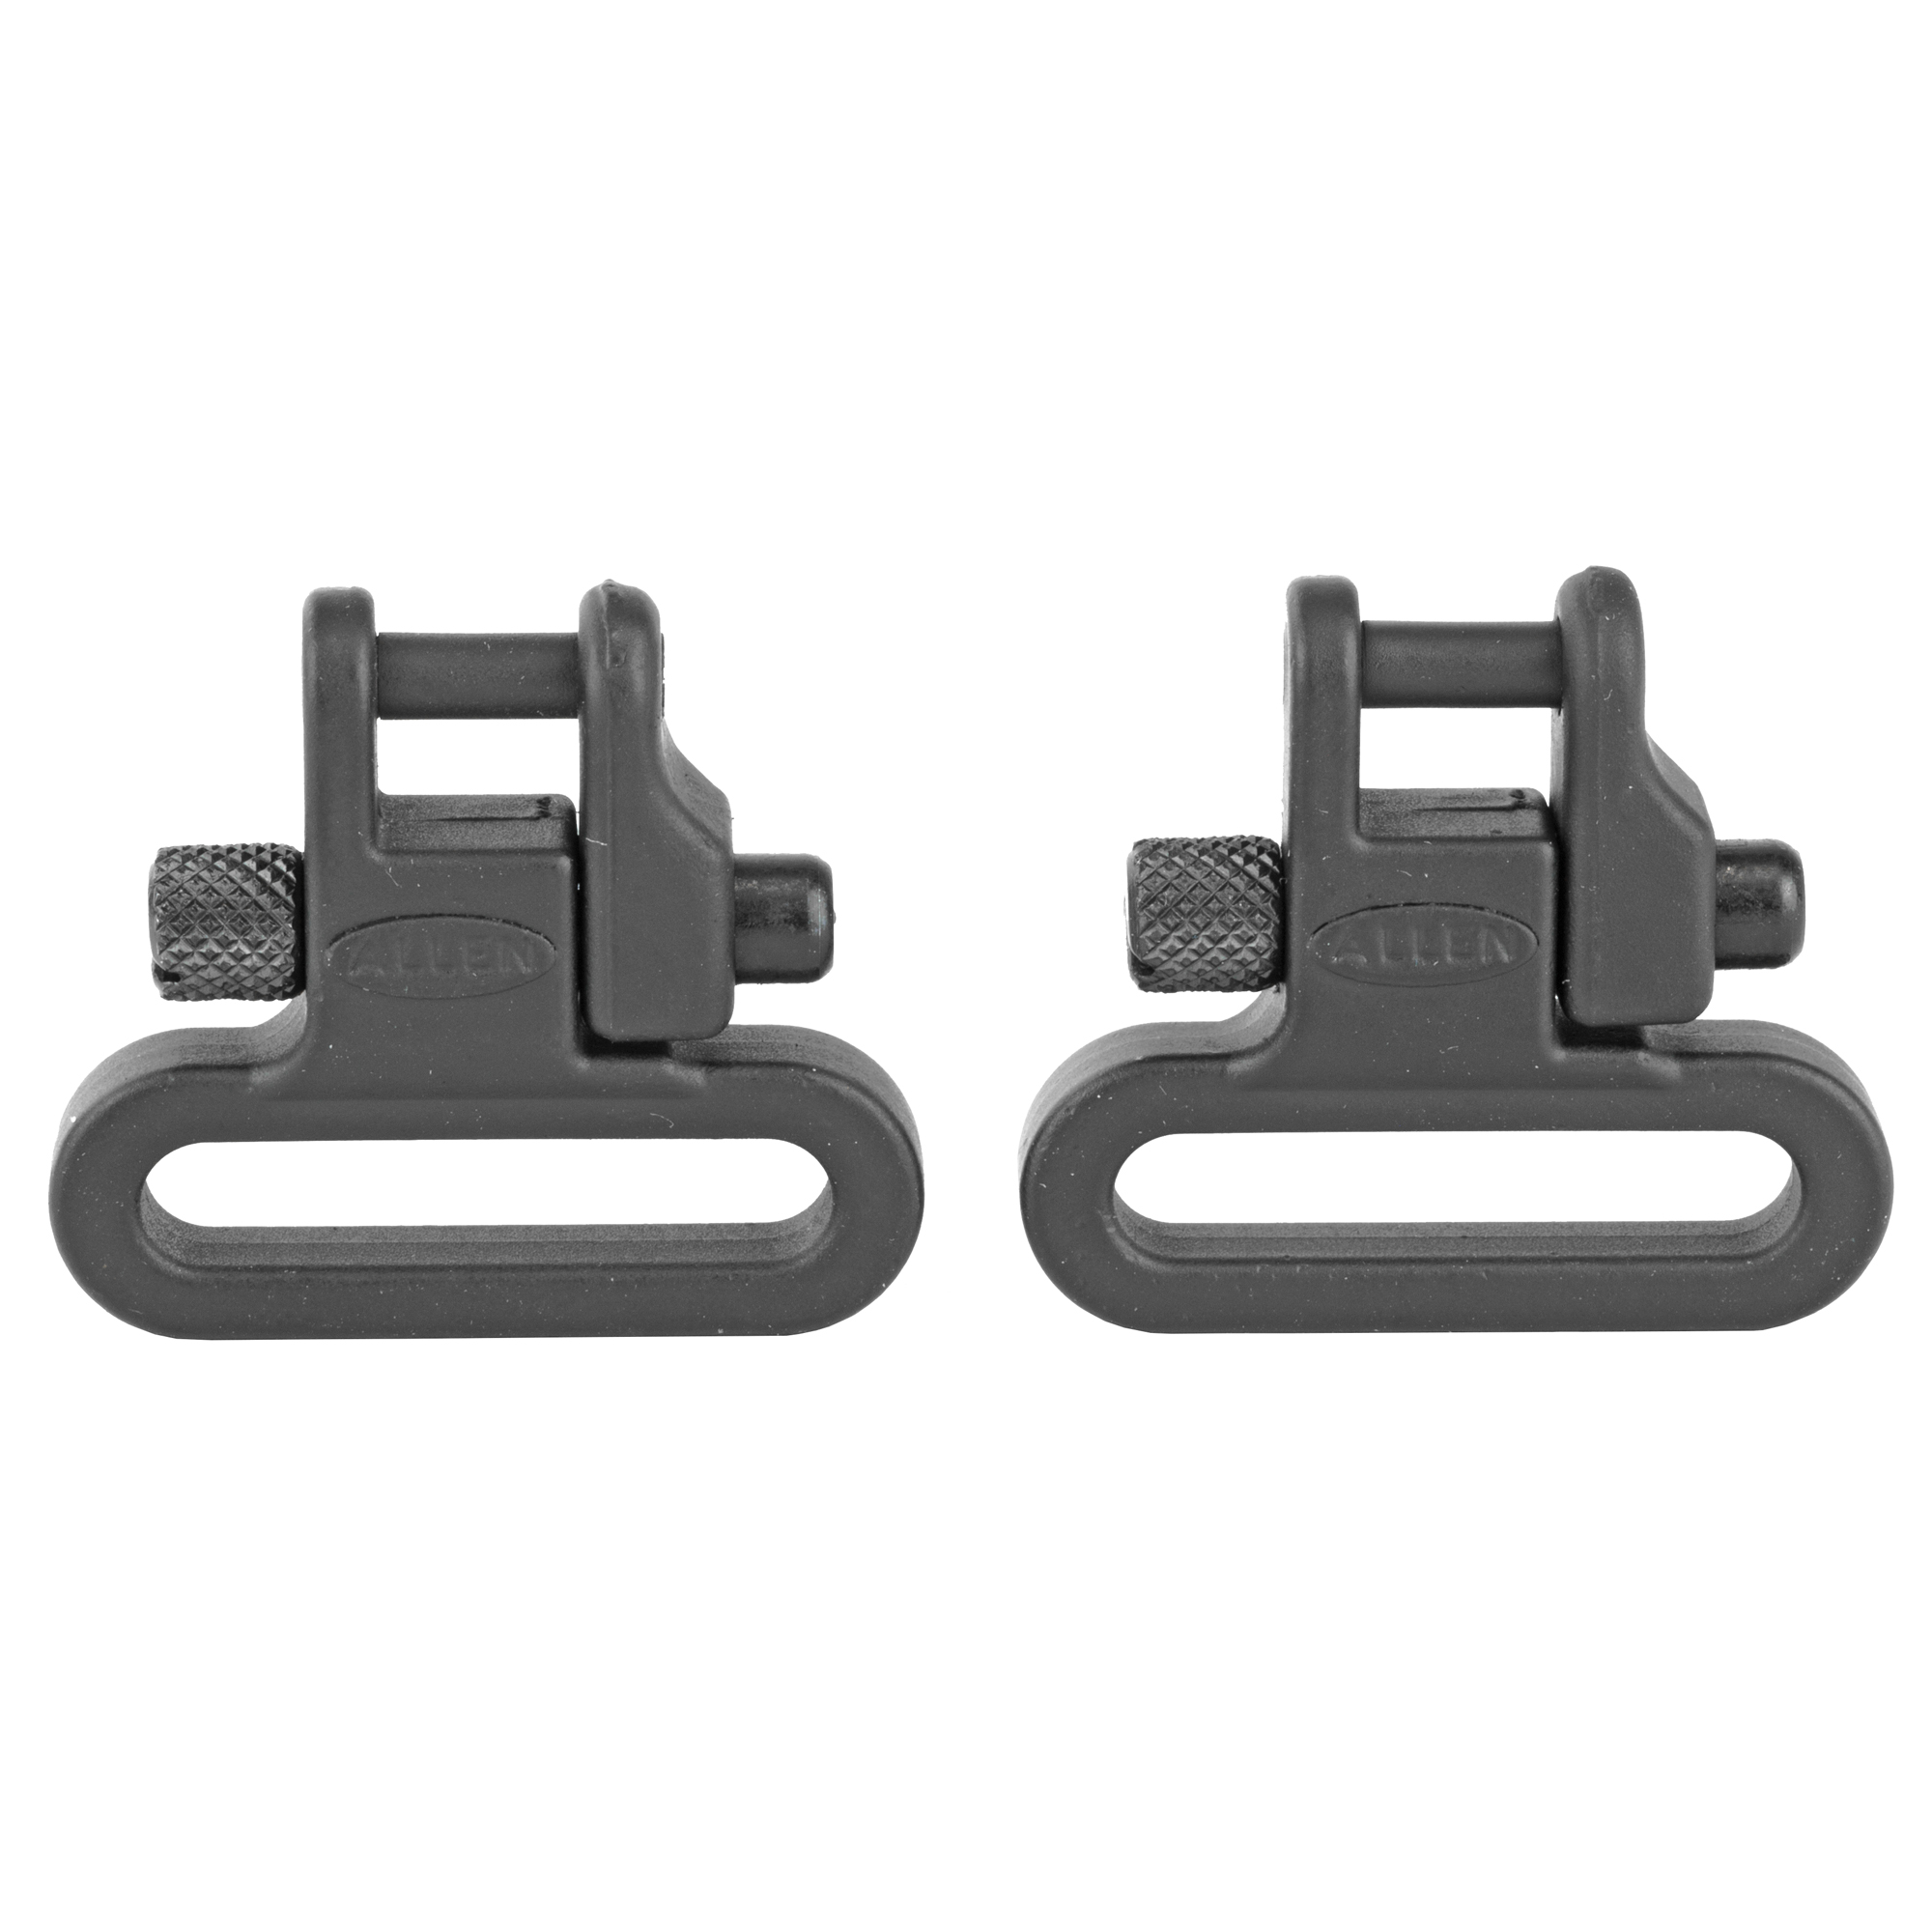 Allen Swivels Blt Action Blk 1""